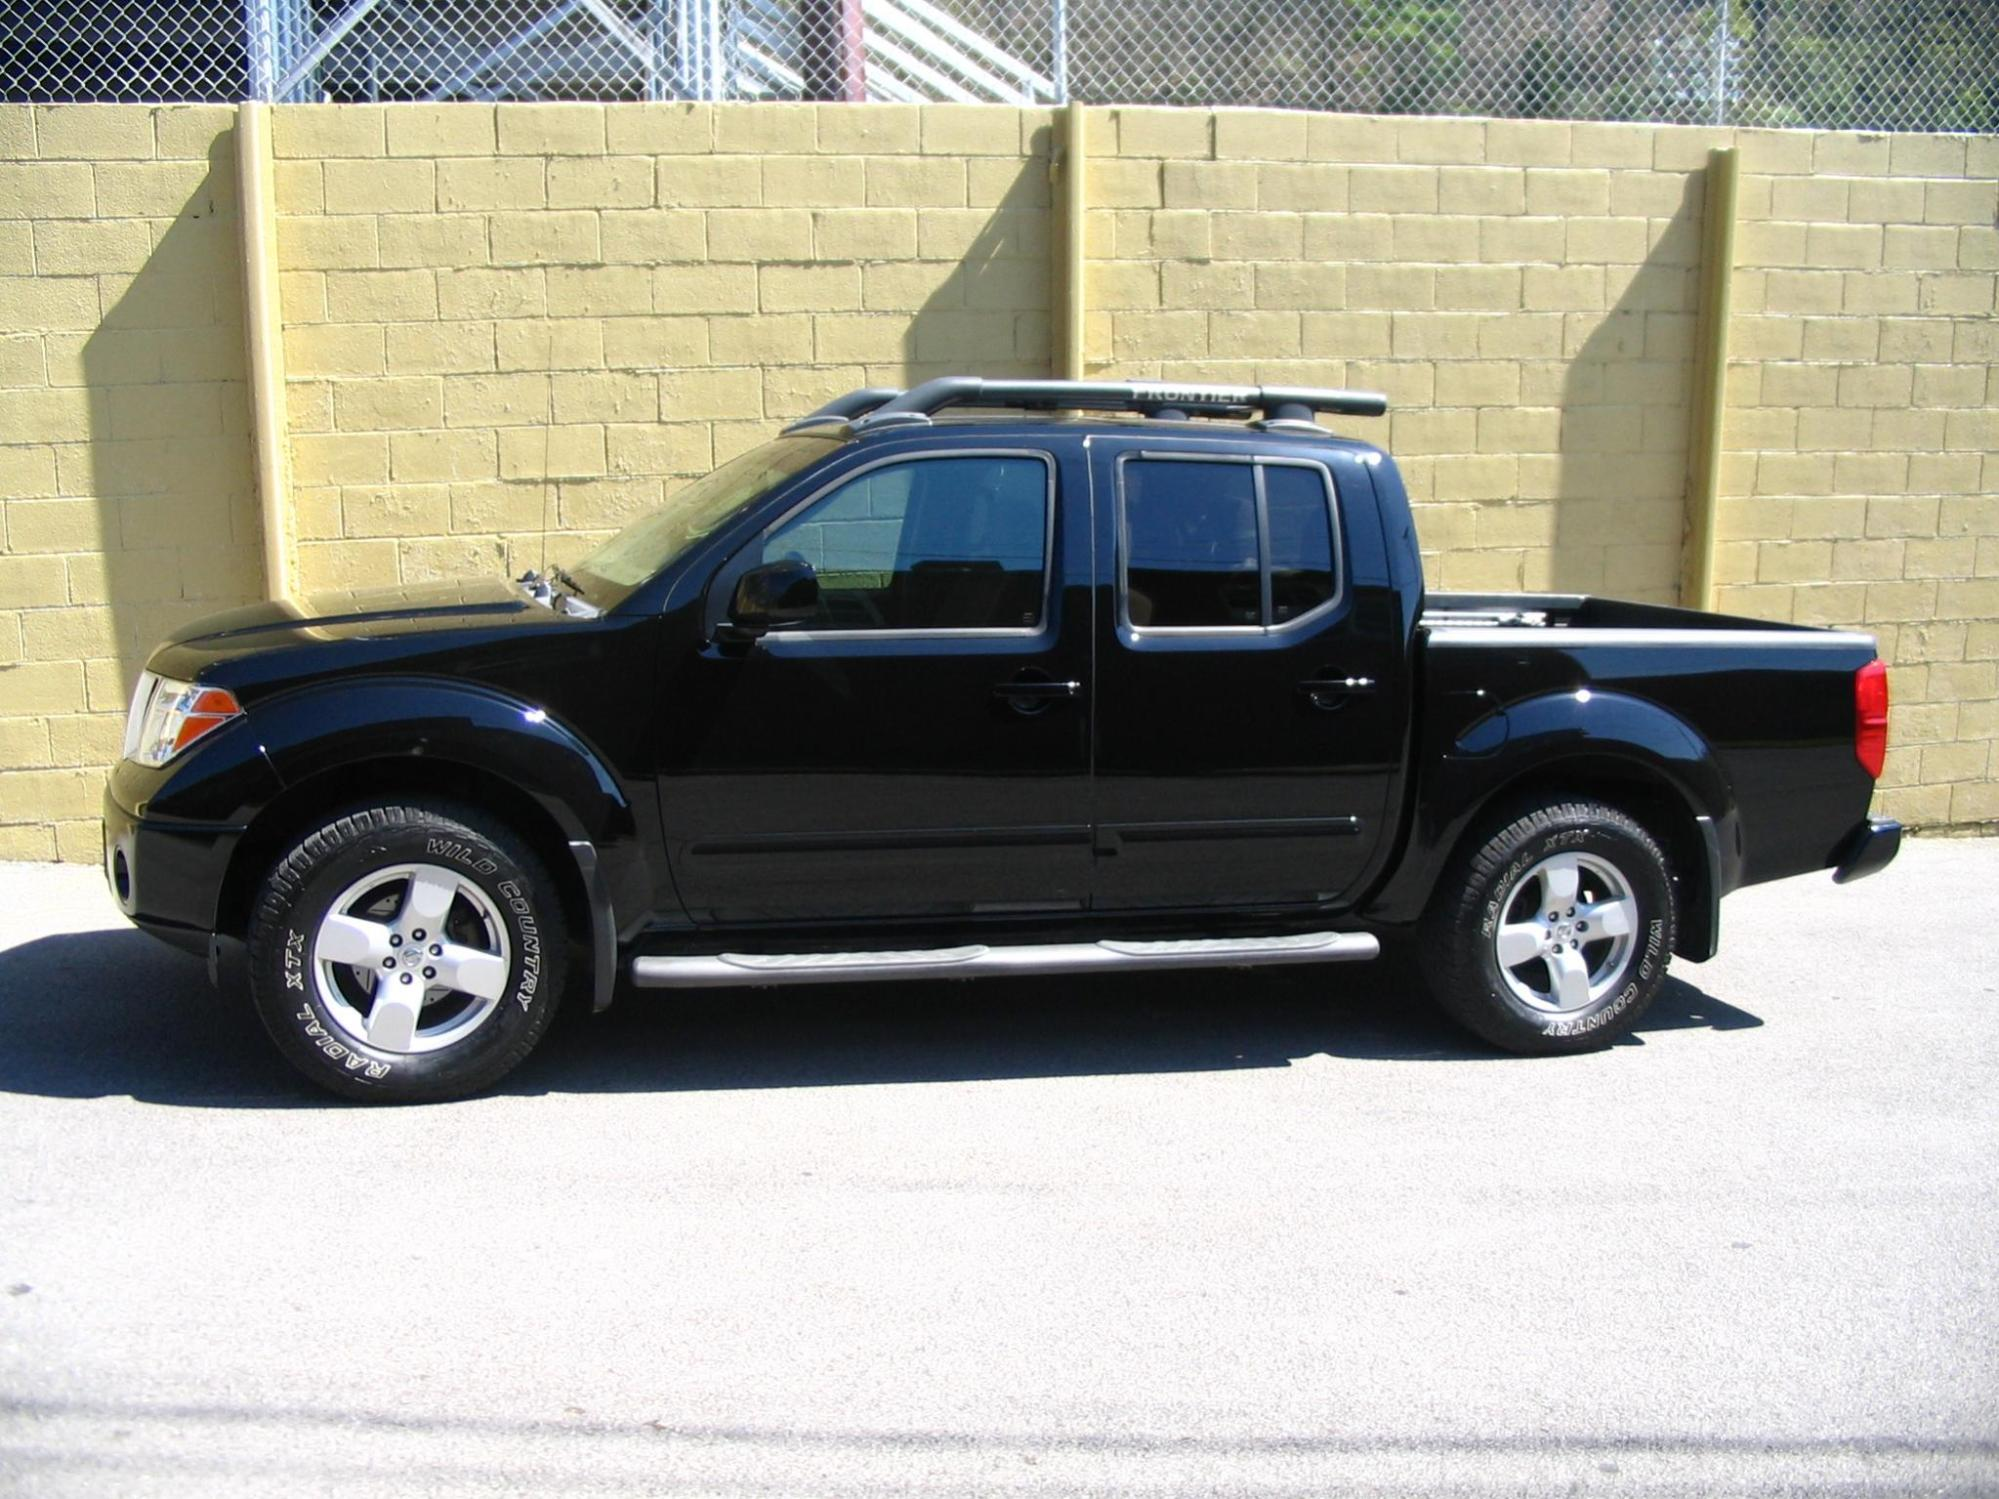 hight resolution of 2005 nissan frontier crew cab le img 8642 jpg